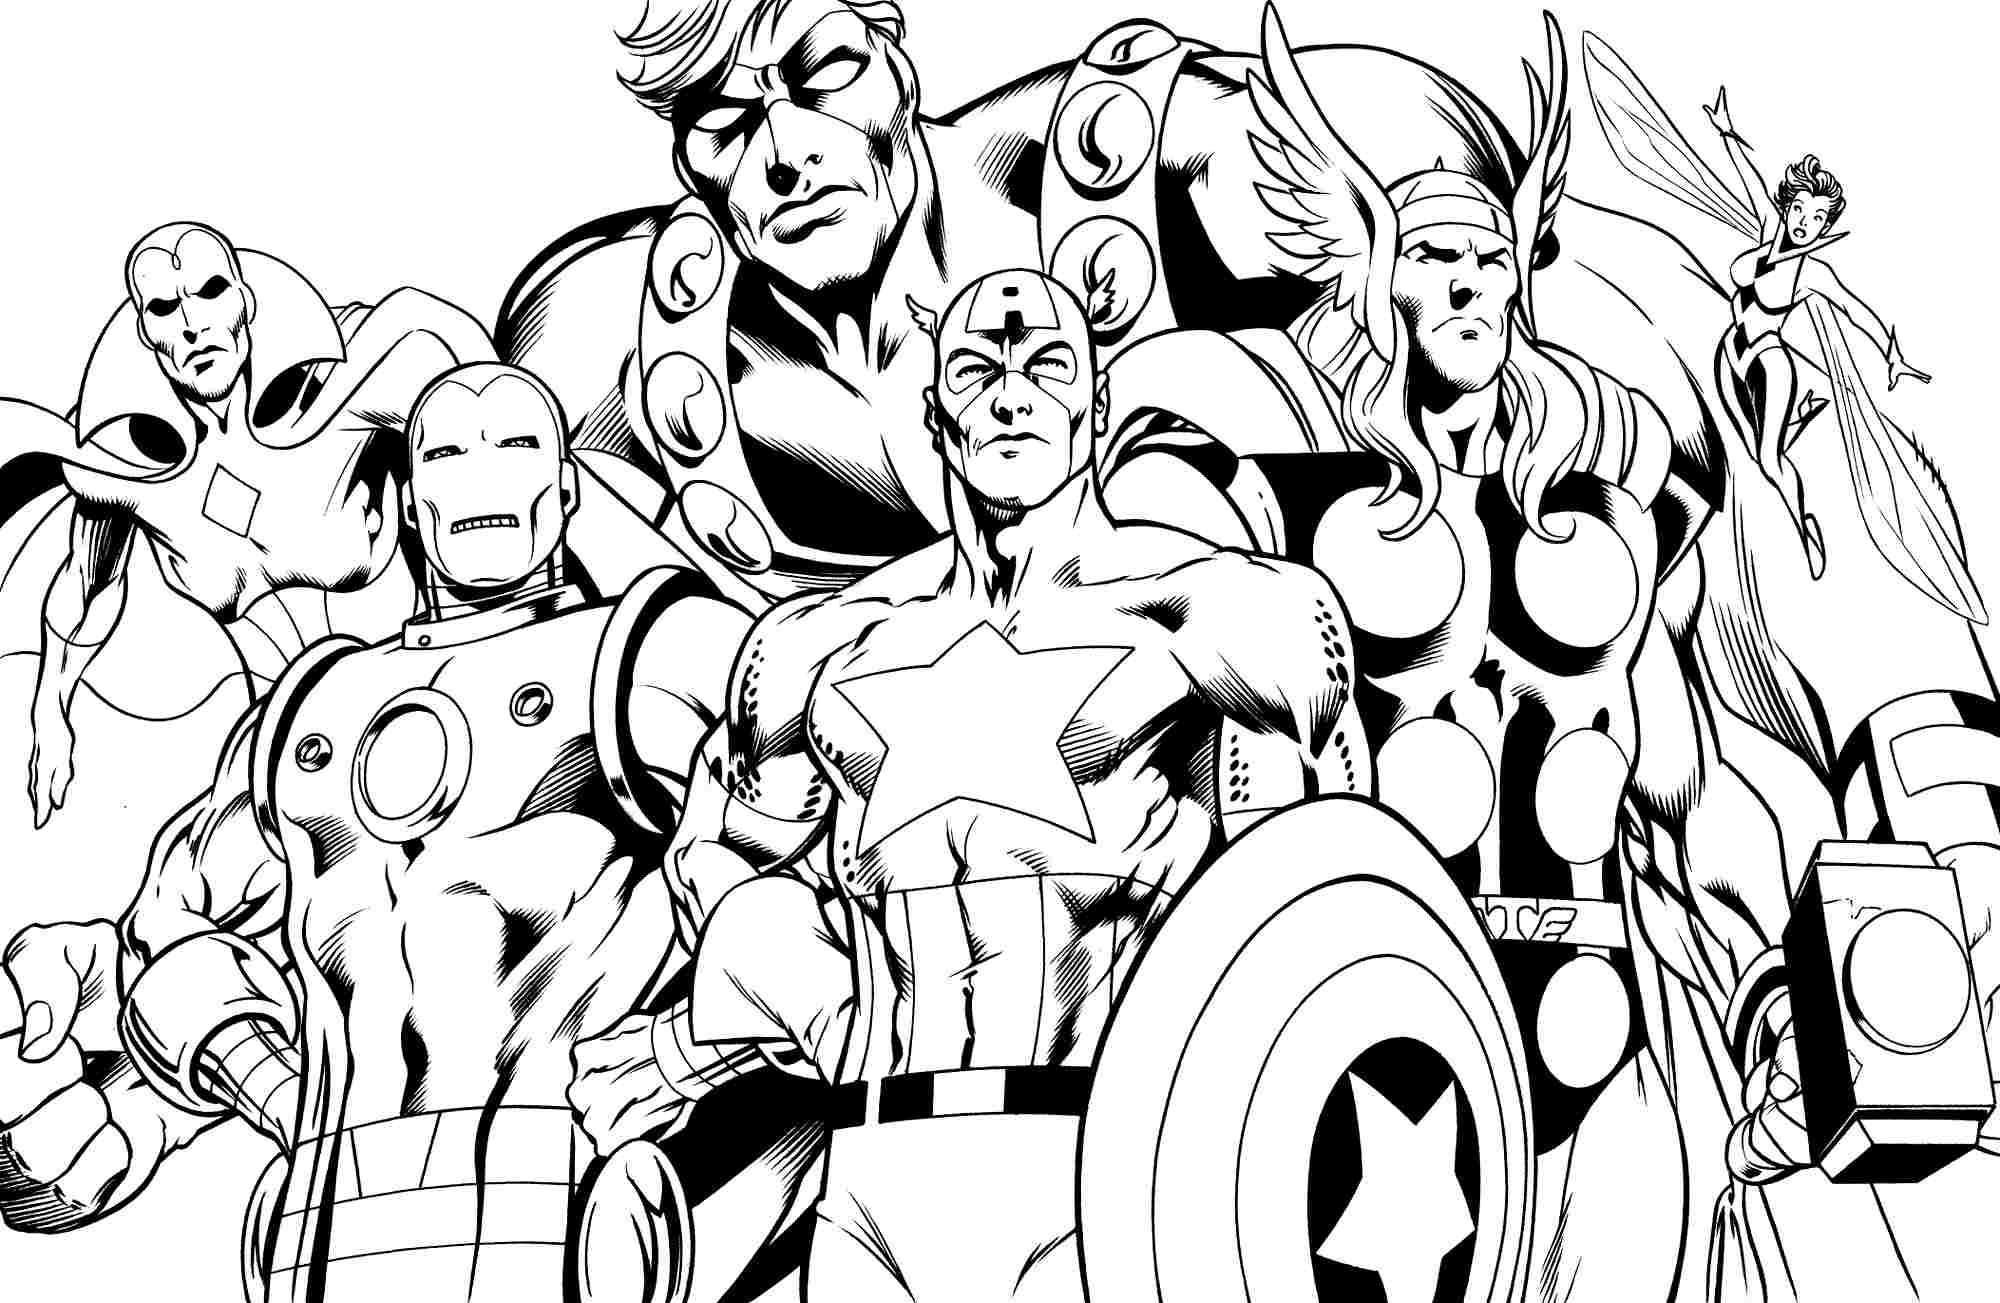 coloring pages superheroes superhero coloring pages to download and print for free pages coloring superheroes